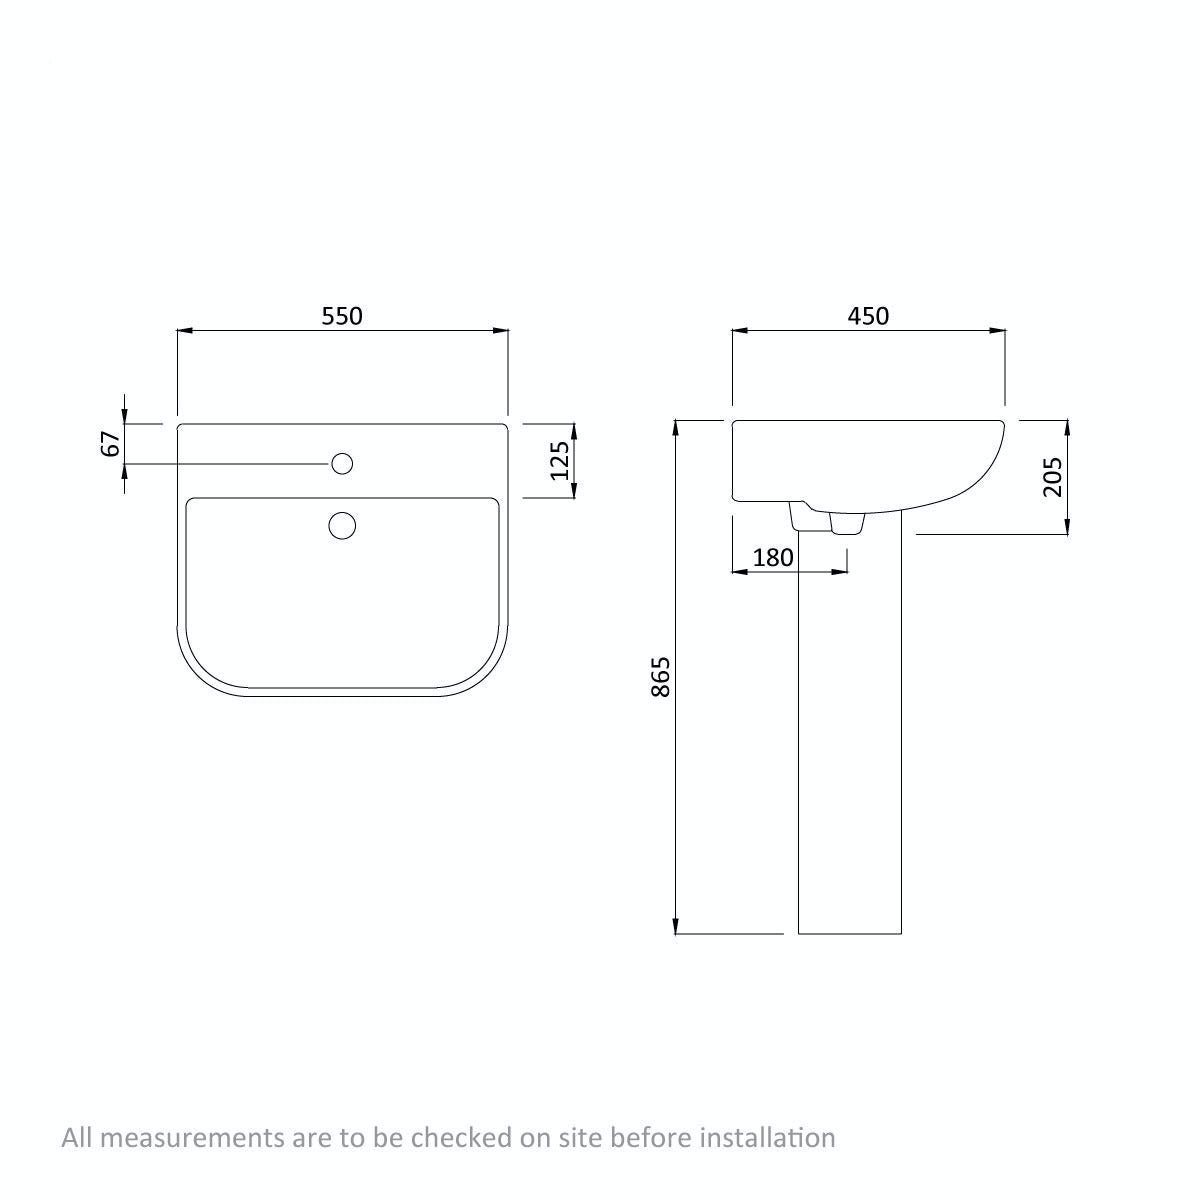 Dimensions for Orchard Derwent square 1 tap hole full pedestal basin 550mm